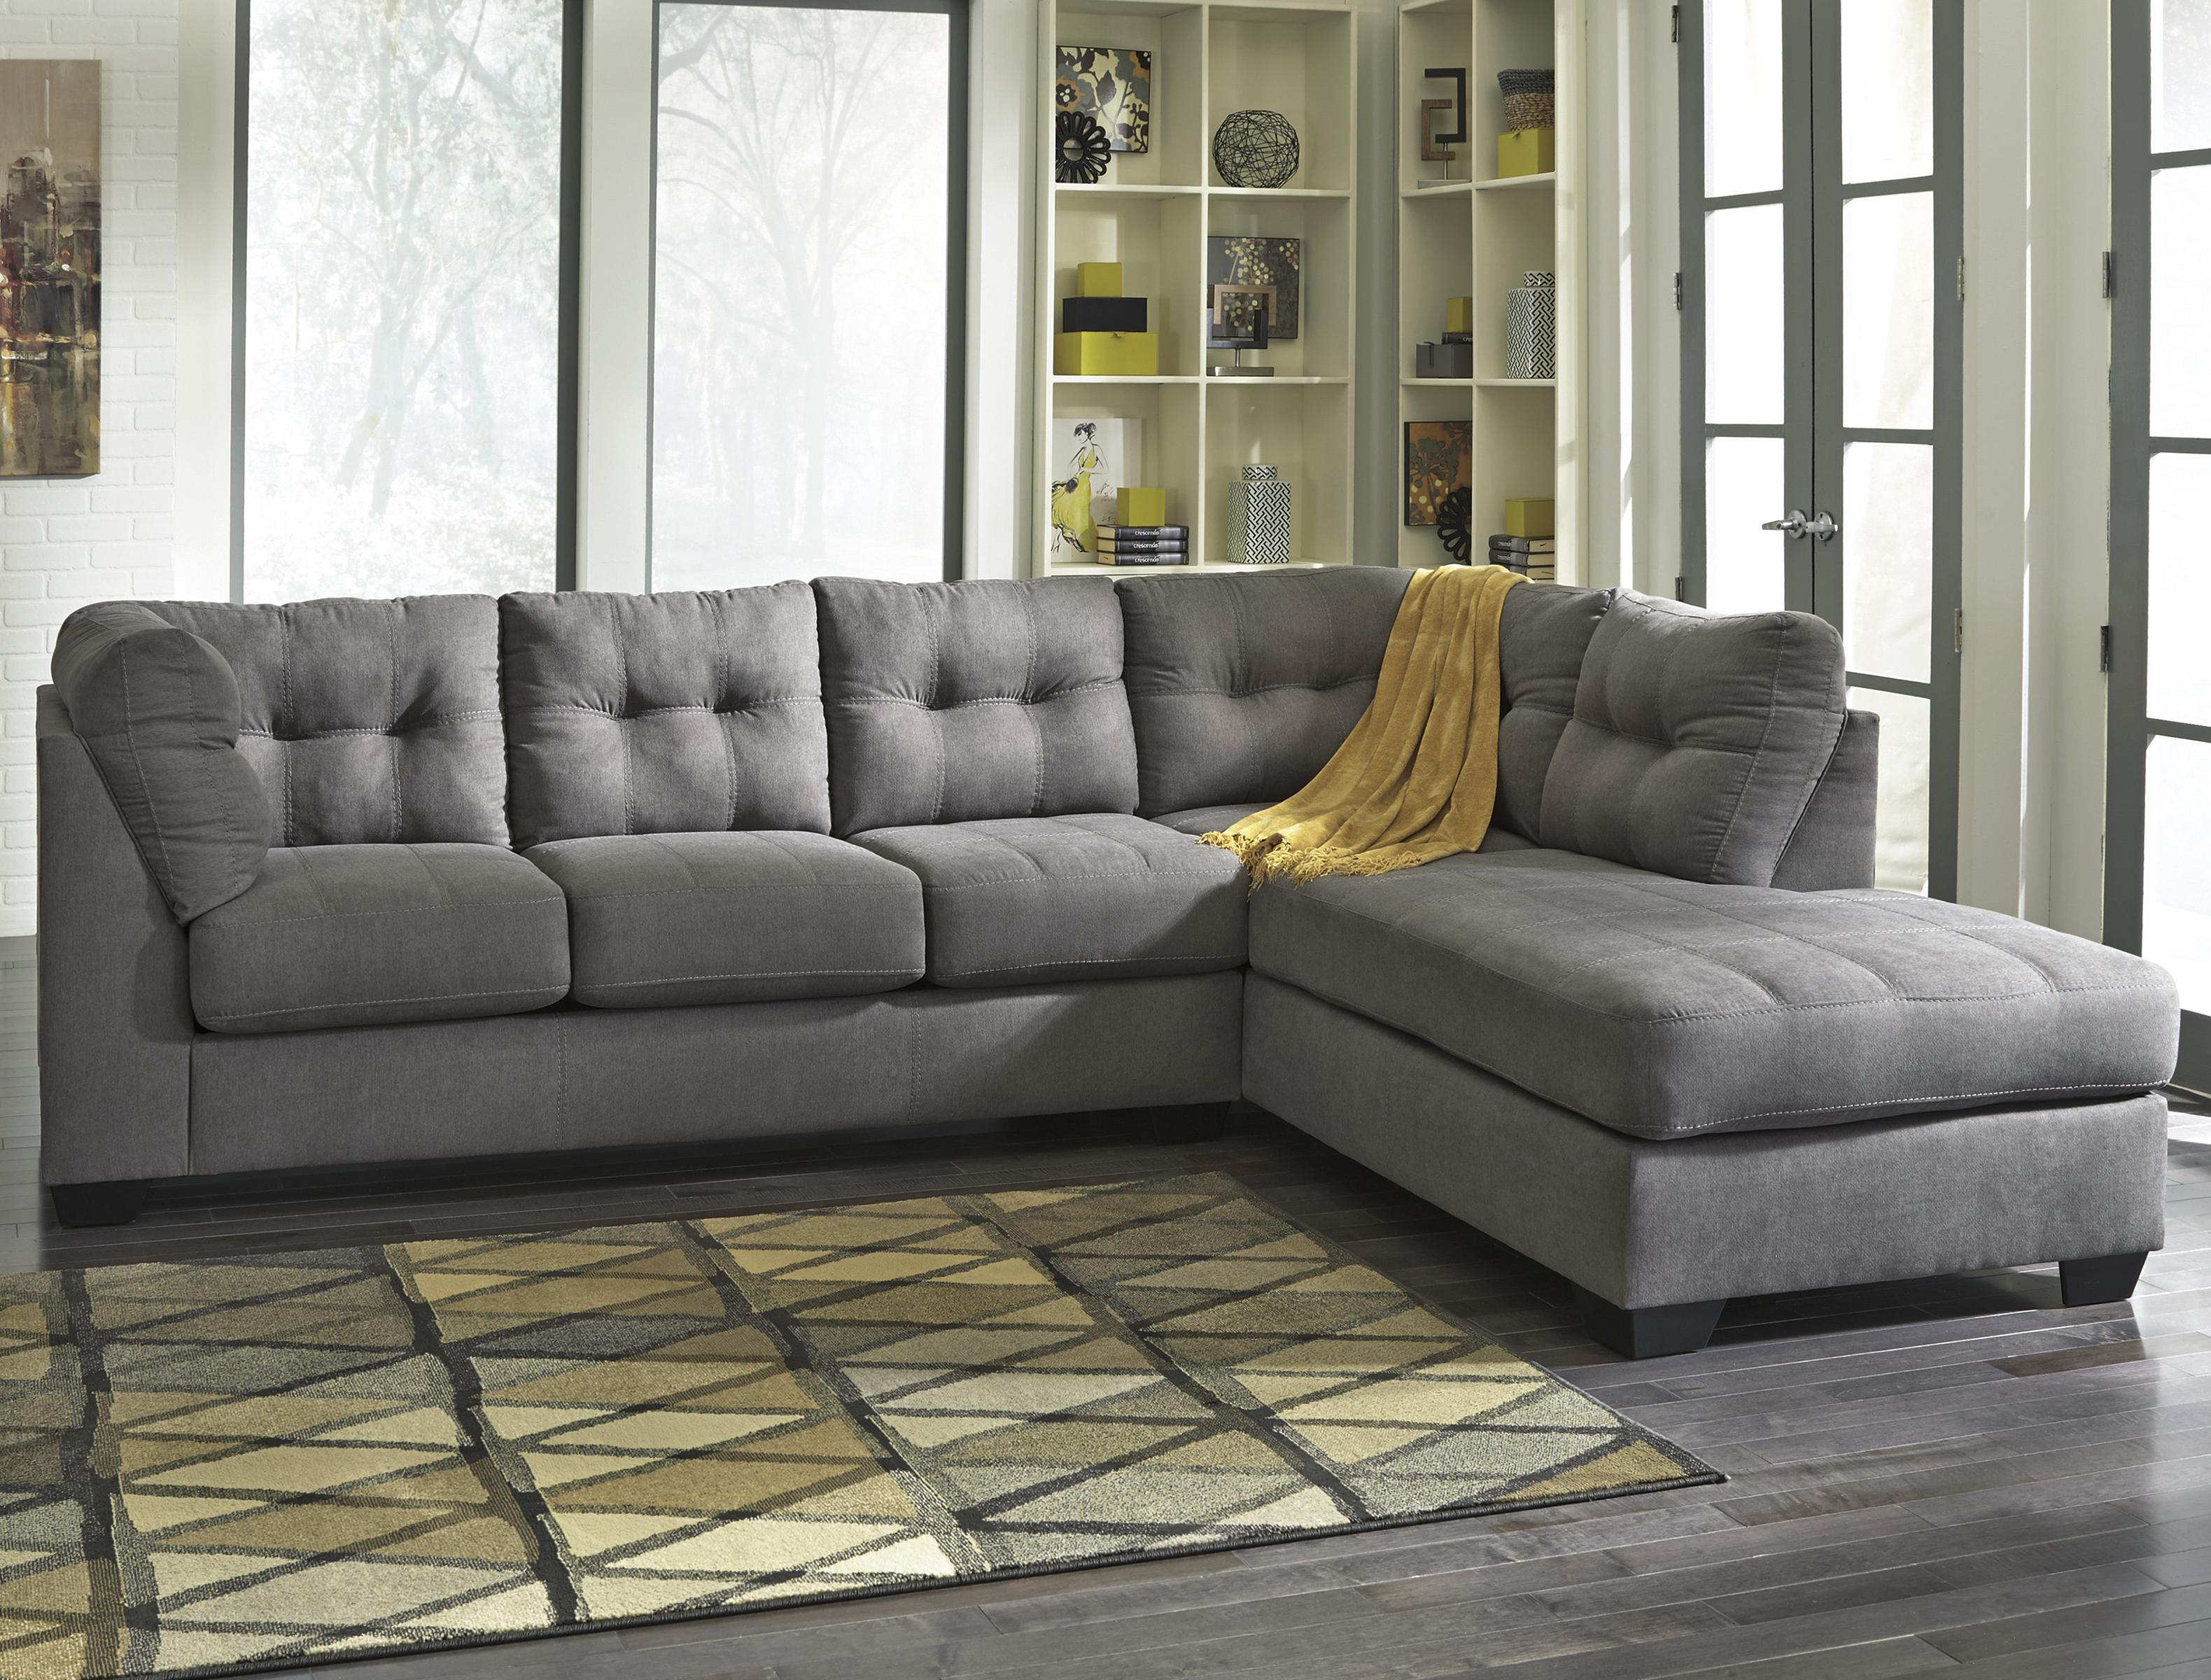 photos sofa couch sofas grey recliners chaise sectional blue with most curved small lounge chairs popular furniture accent